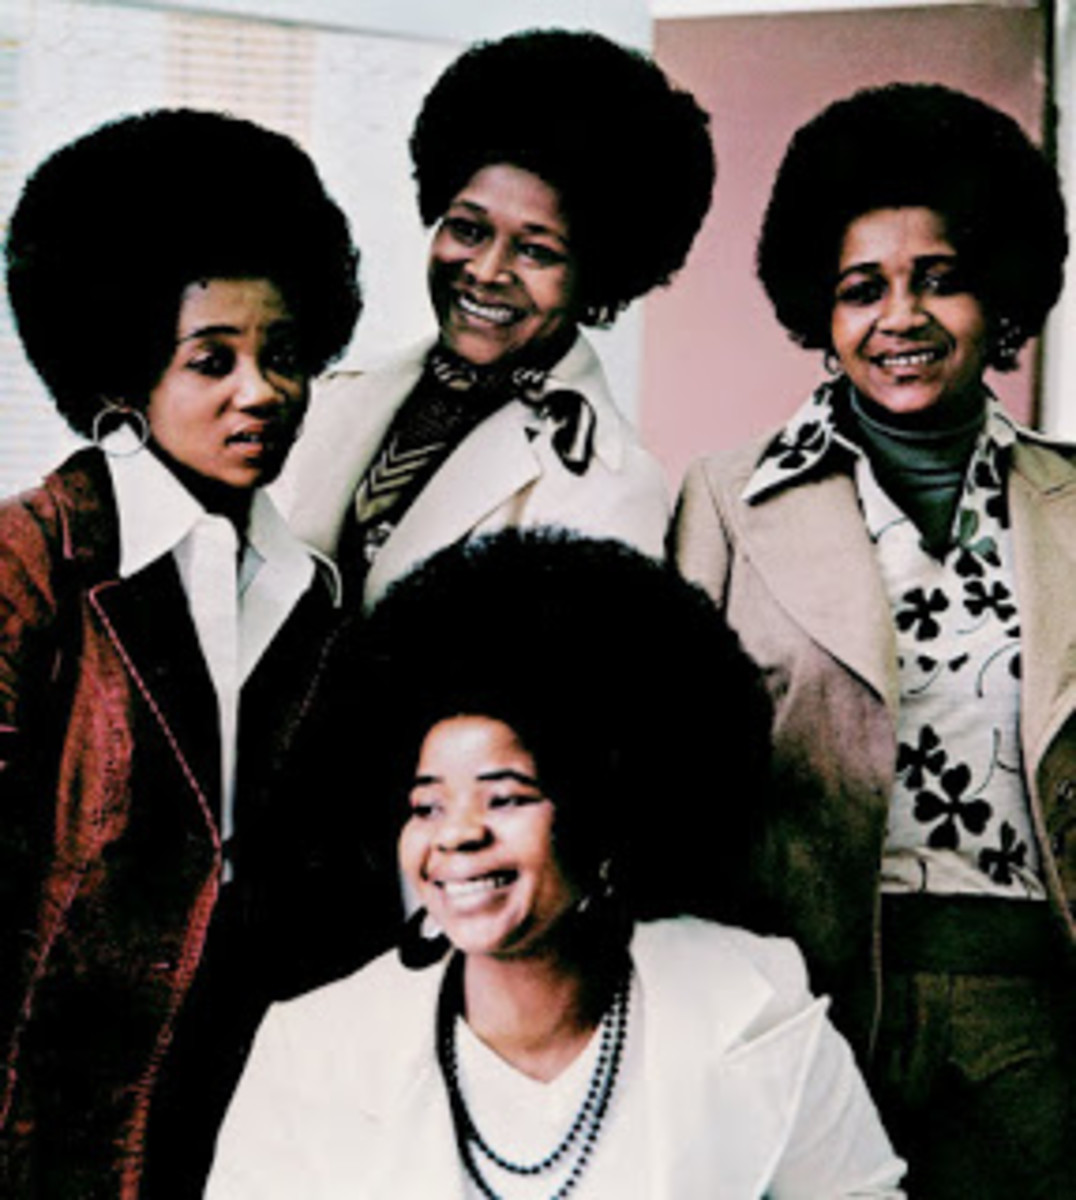 Isigqi Sesimanjemanje was formed in the late 1980s. Regular Electric Jive readers will be aware that this group was born out of one of the country's most popular mbaqanga girl groups, Izintombi Zesi Manje Manje (The modern girls), who - along with th